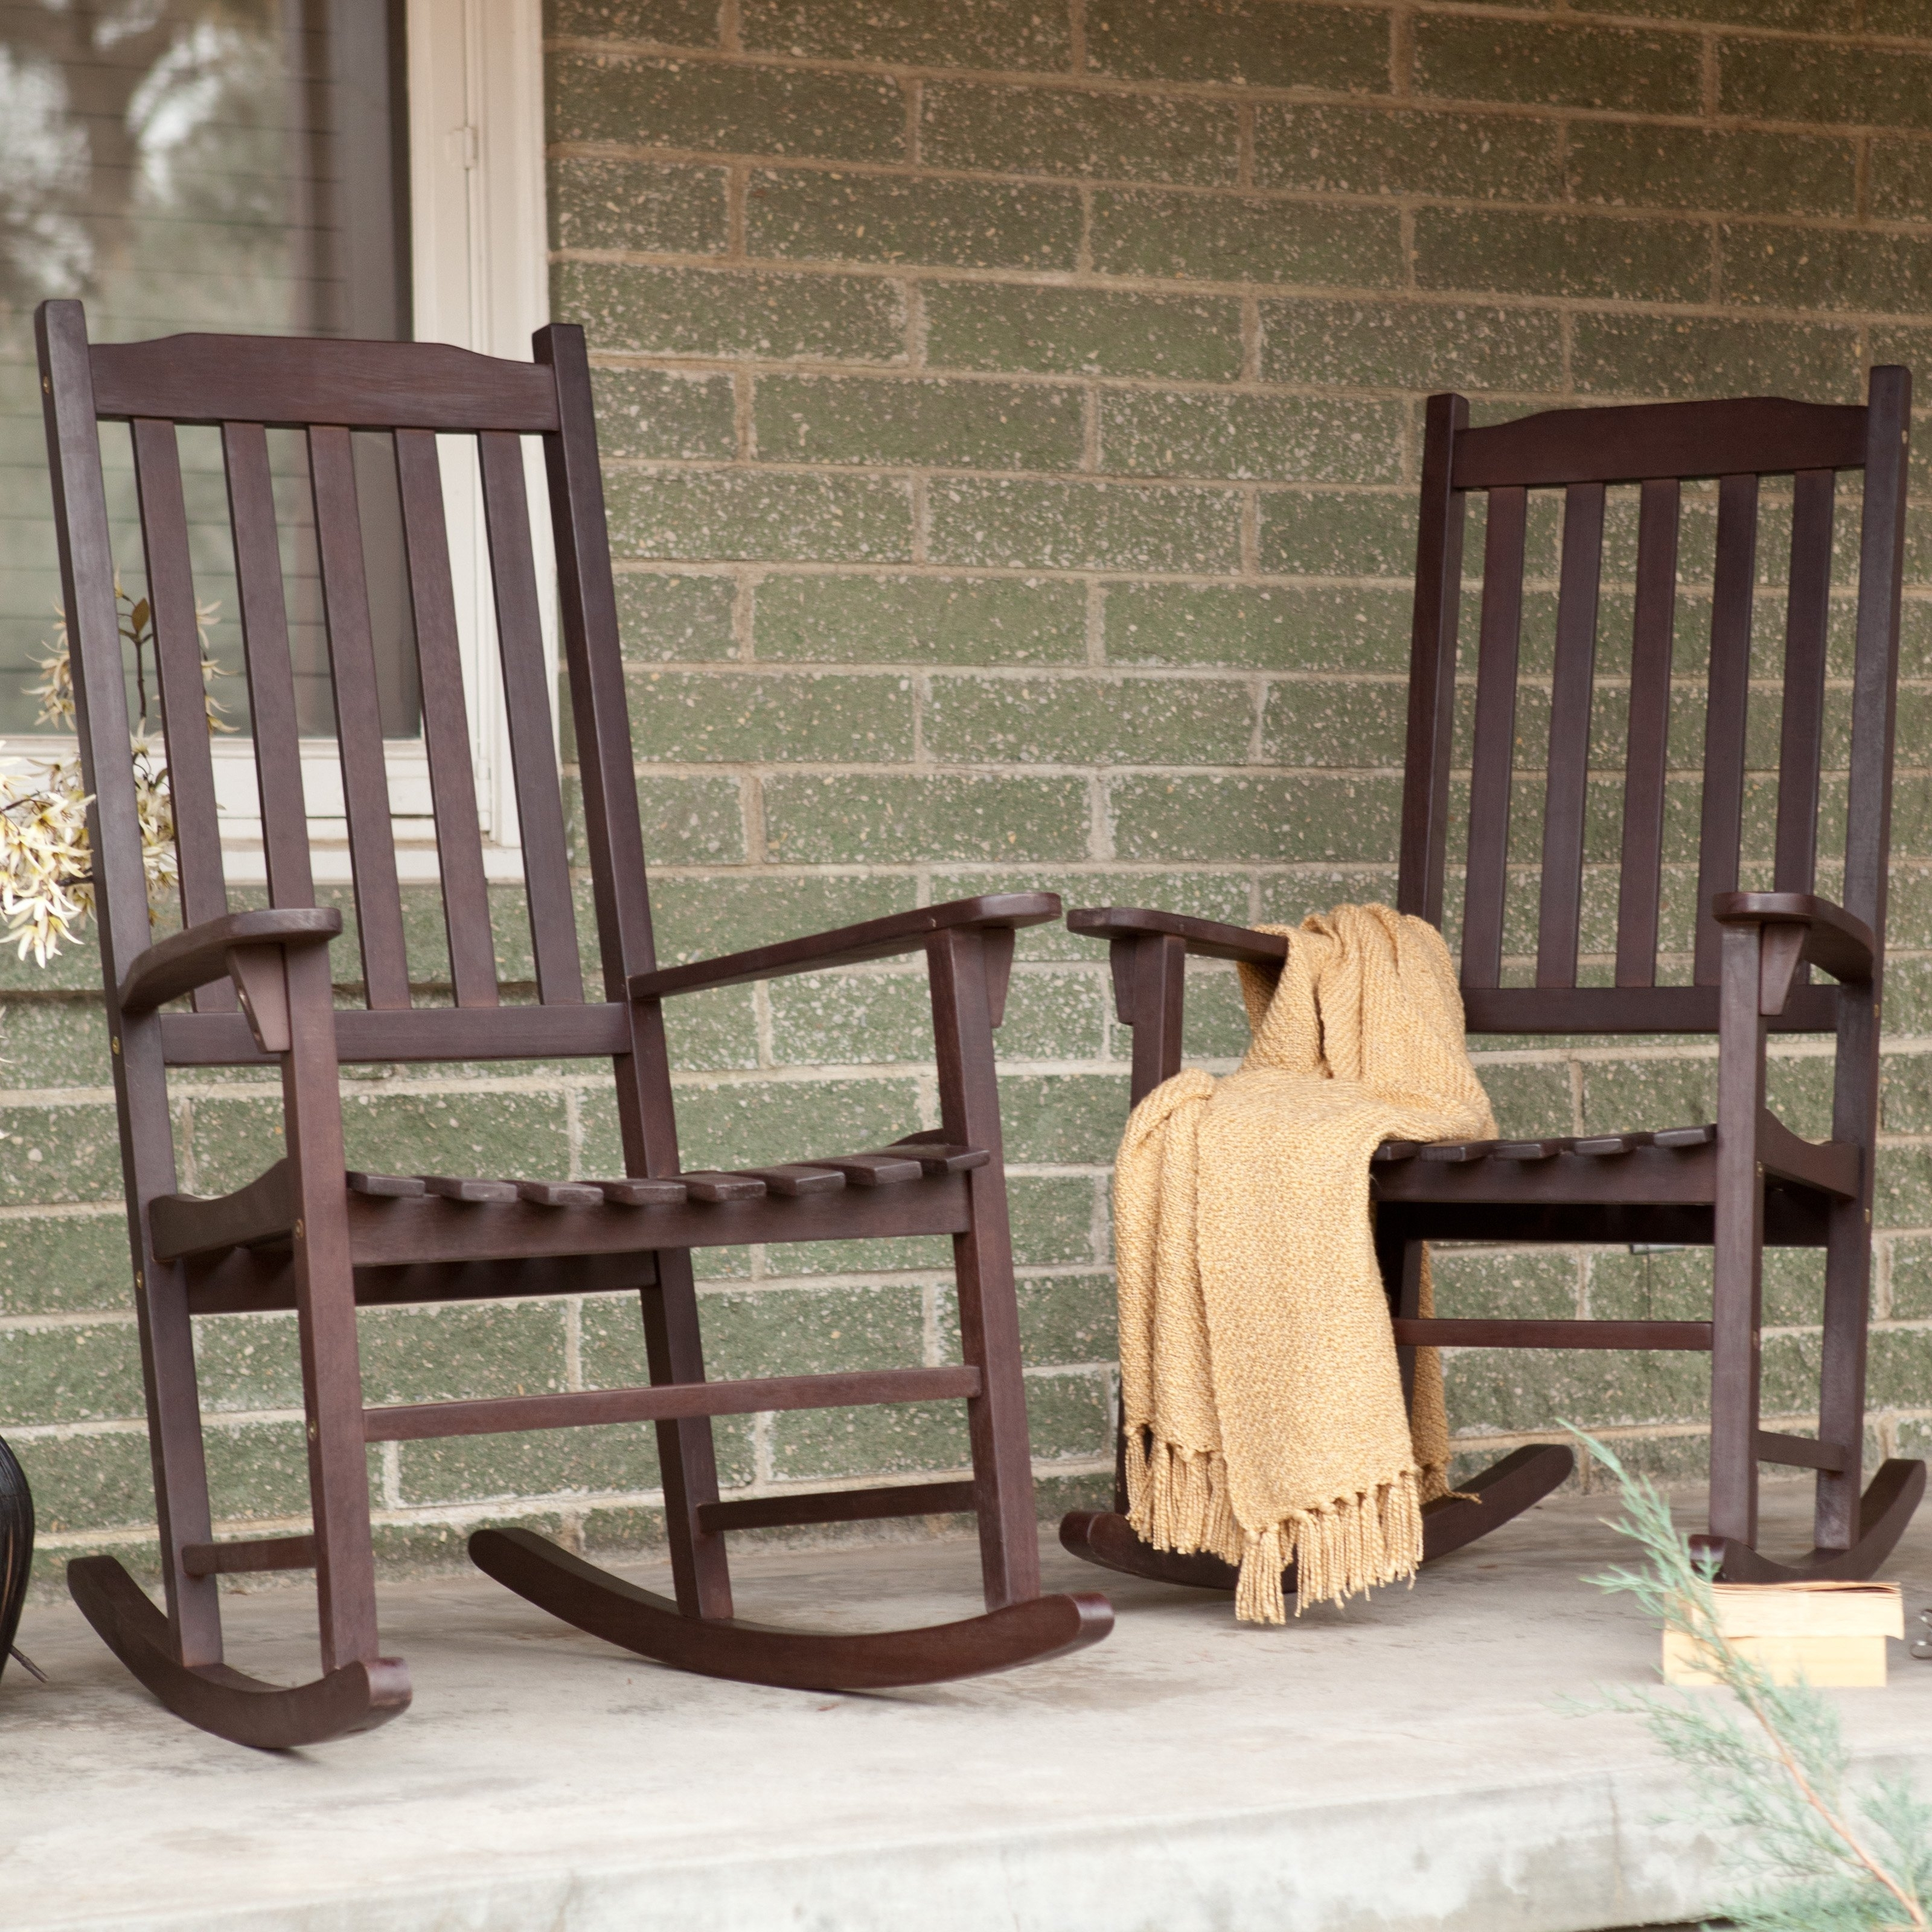 Well Liked Patio Furniture Rocking Benches With Category : Furnishings & Home Accents Yard Patio #e0F8667Db5A (View 2 of 15)